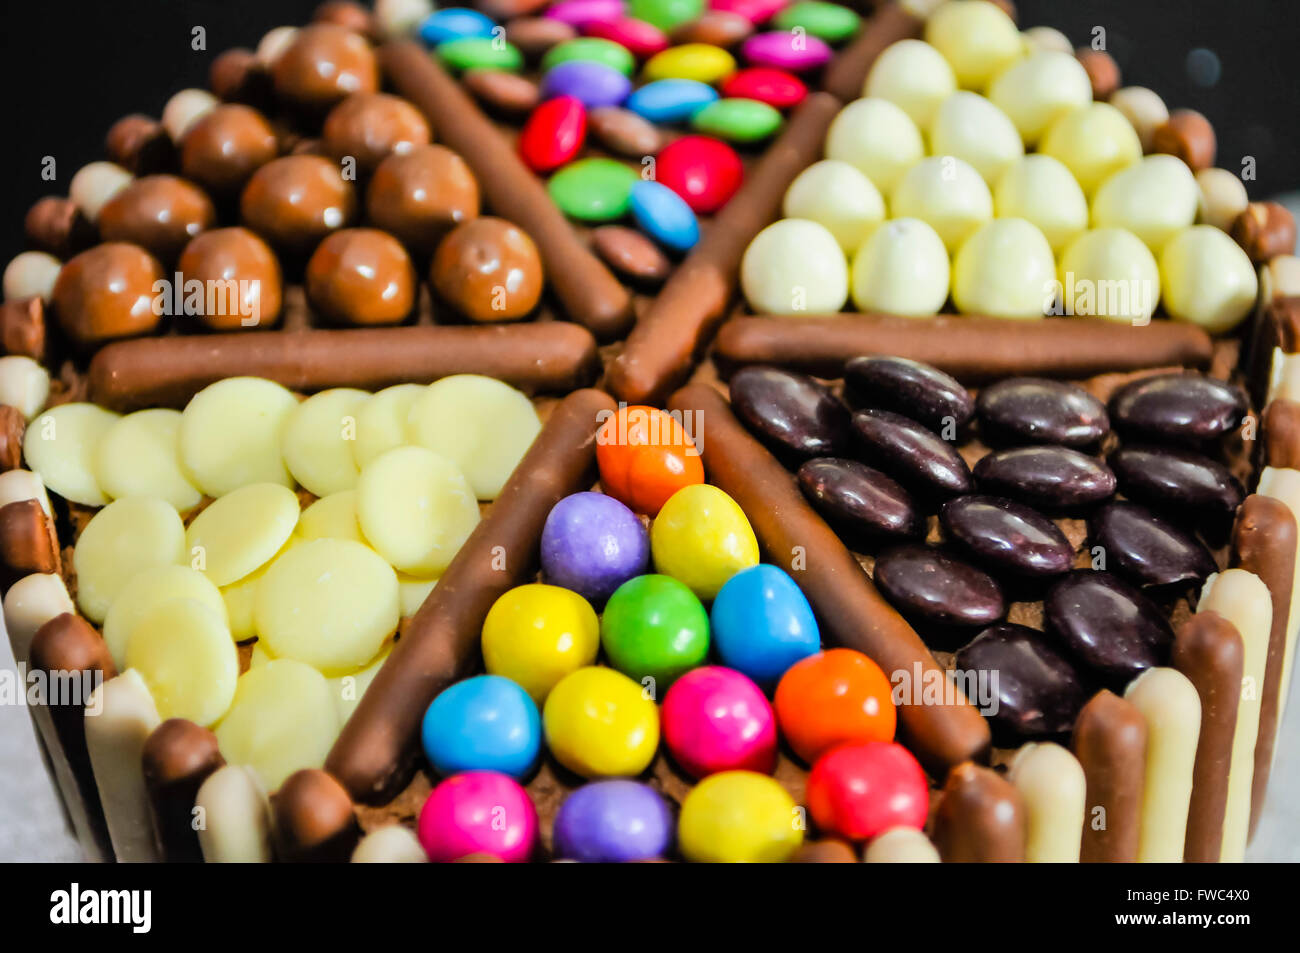 World Best Cake Images In Hd : M&Ms, Milky Way Buttons, Maltesers, Smarties Minstrels and ...